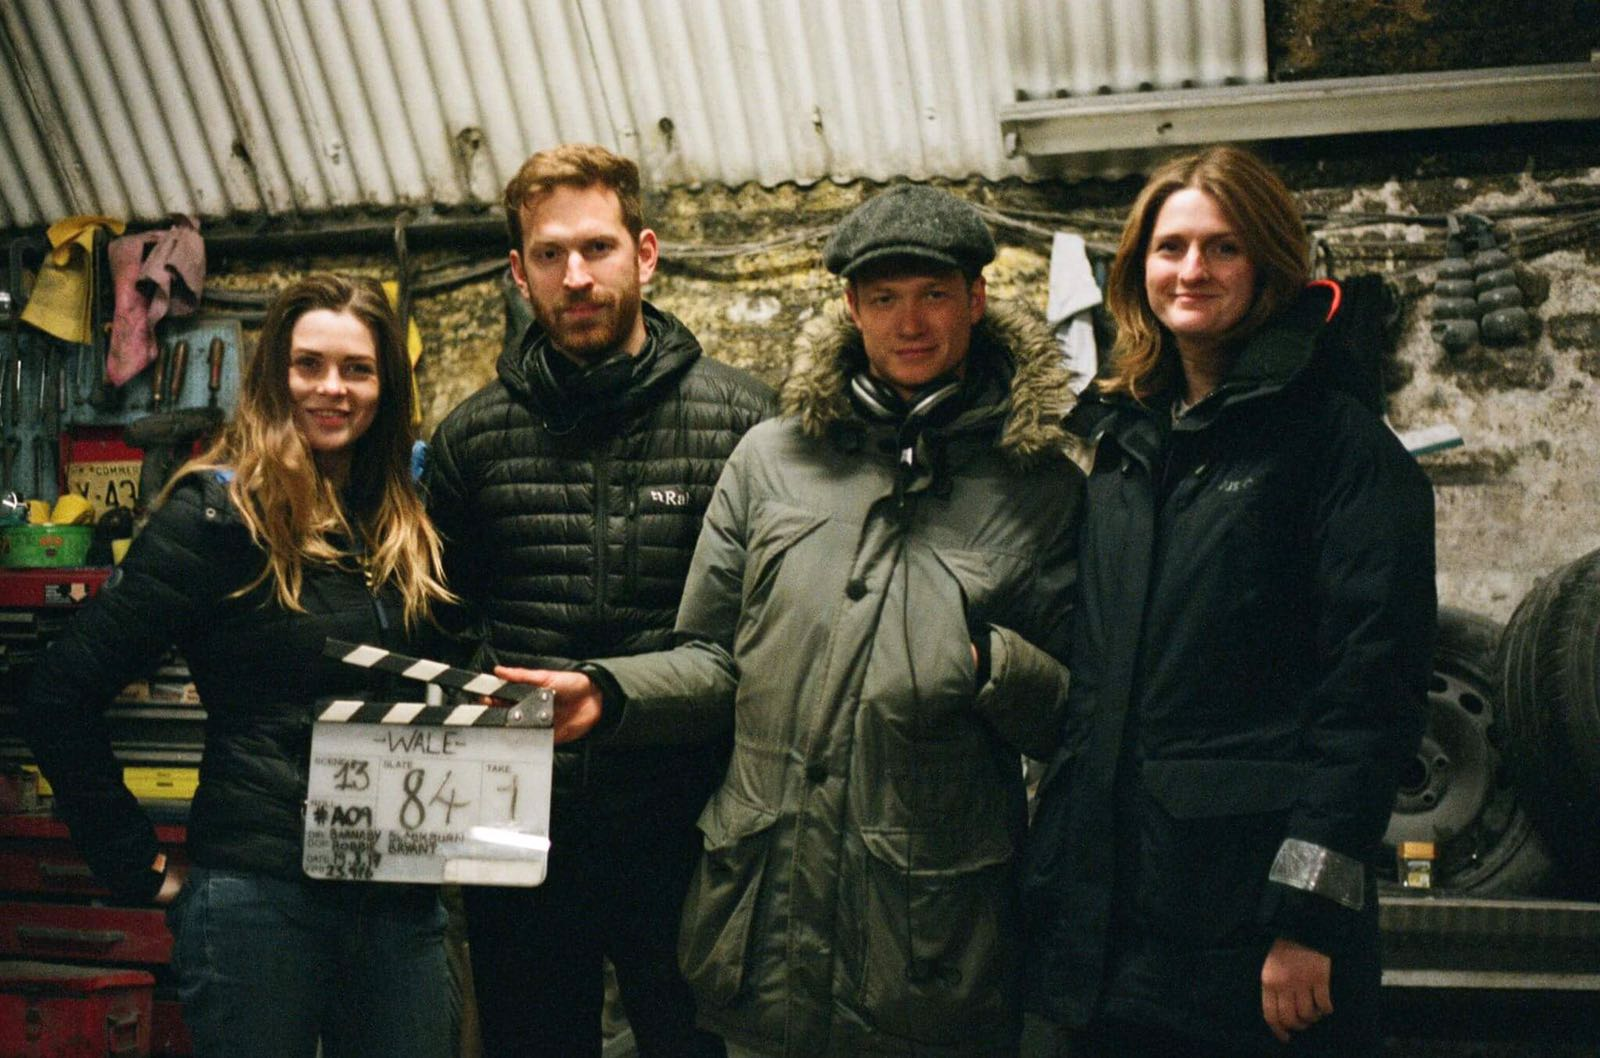 We wrapped the last of our 5 day shoot today. It's been an incredible last week with so many people putting in an extraordinary amount of work throughout. Huge thanks to all the cast and crew members who created such an electric energy on set, and once again to all our supporters who made this film a reality. Now we head into the edit where the real work begins!